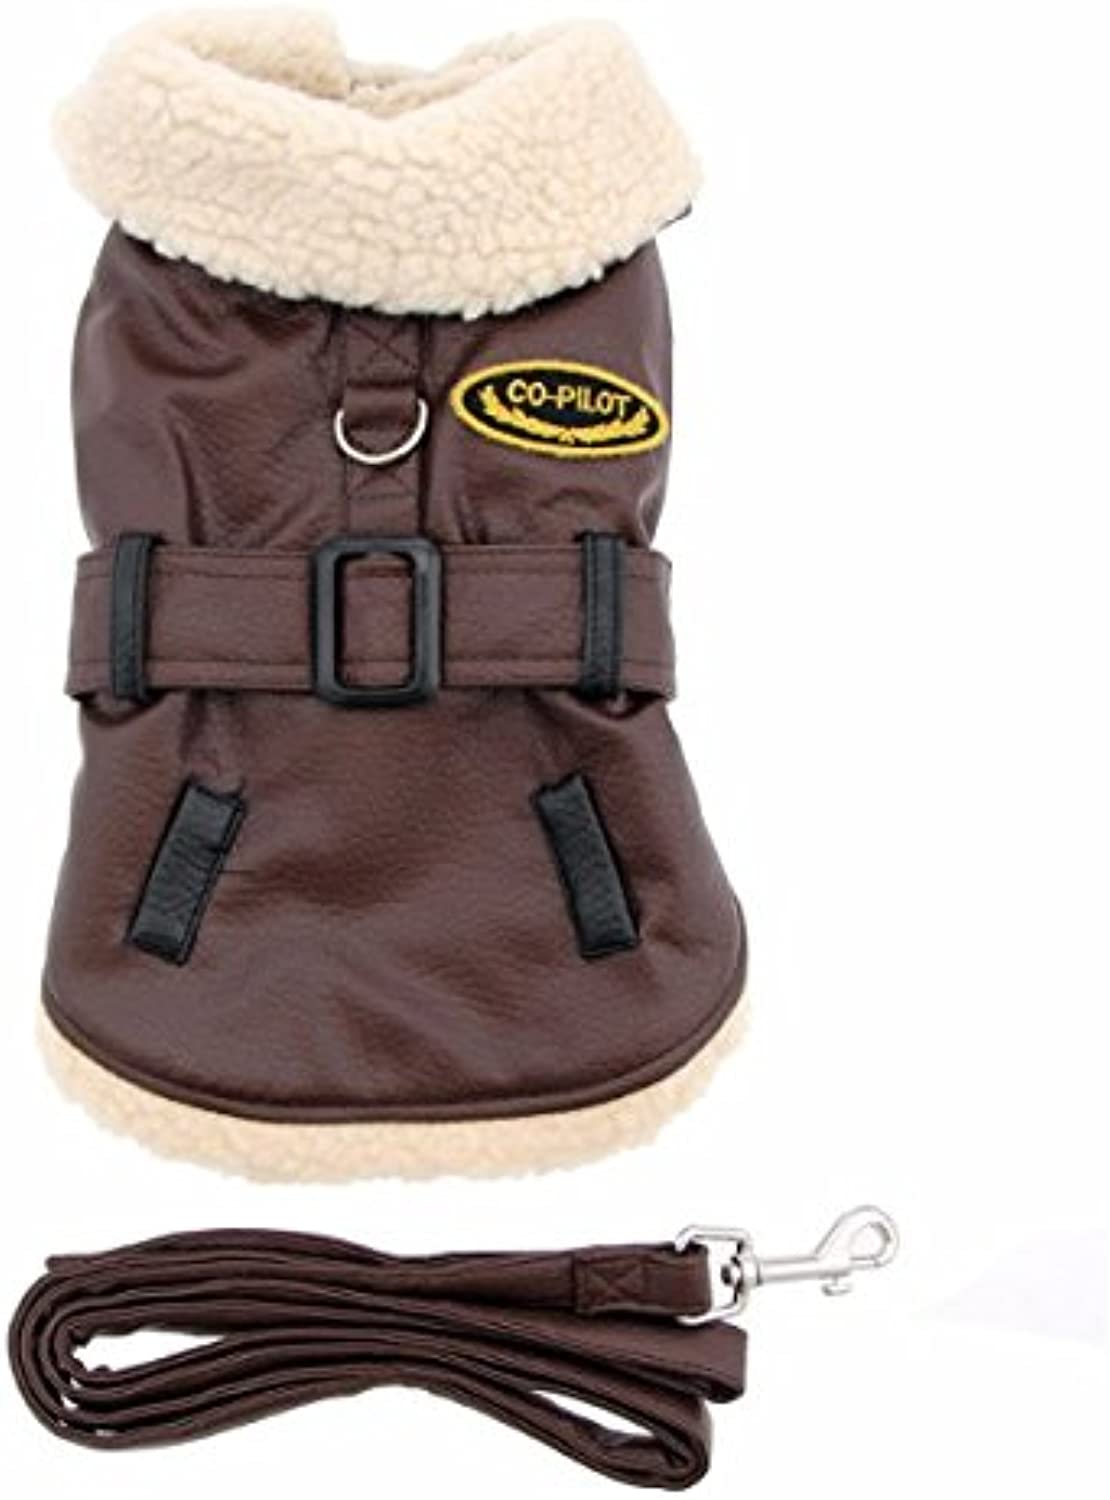 Brown and Black Faux Leather Bomber Dog Coat Dog Harness and Leash (Small)